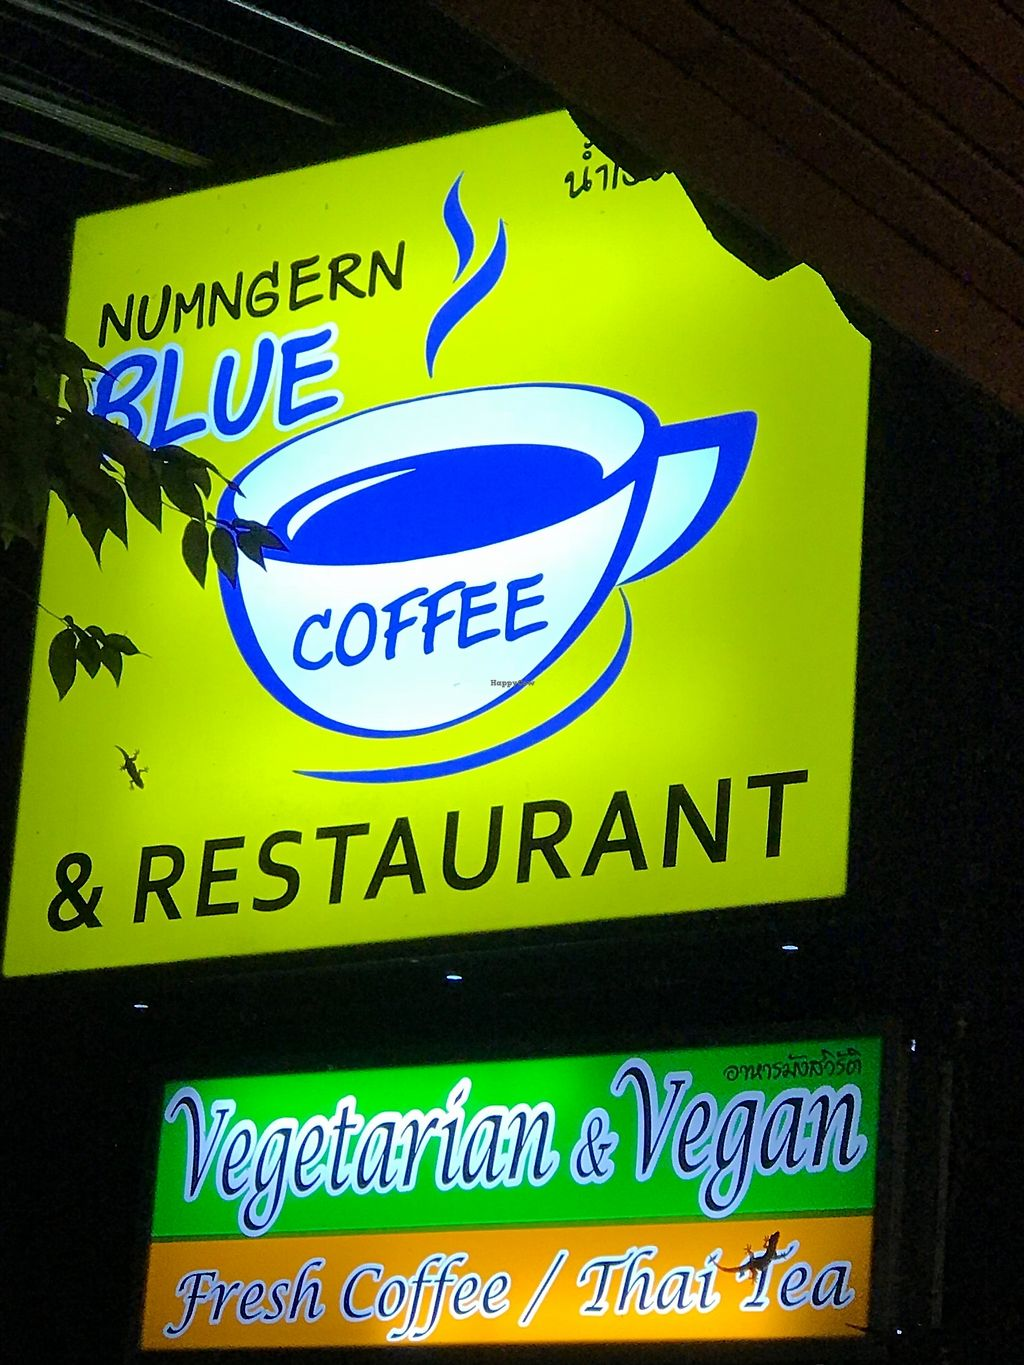 "Photo of NumNgern Coffee & Restaurant  by <a href=""/members/profile/Hulahoopingvegan"">Hulahoopingvegan</a> <br/>Sign outside restaurant  <br/> November 29, 2017  - <a href='/contact/abuse/image/106202/330341'>Report</a>"